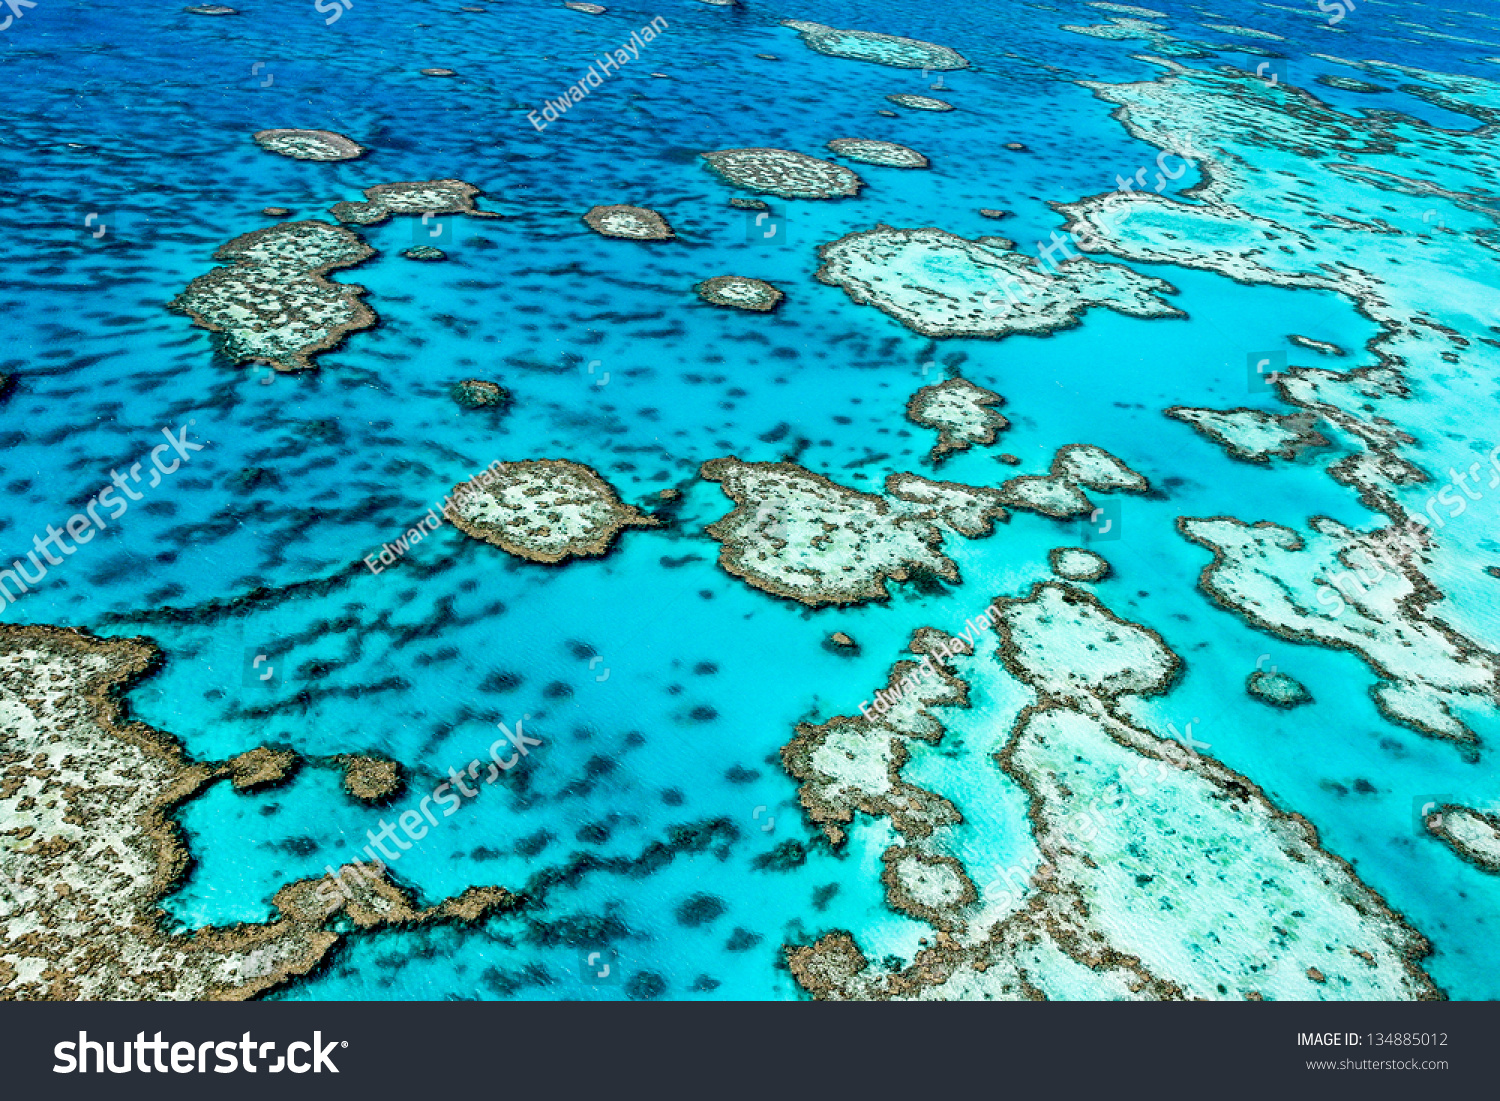 The Great Barrier Reef in Queensland, Australia.